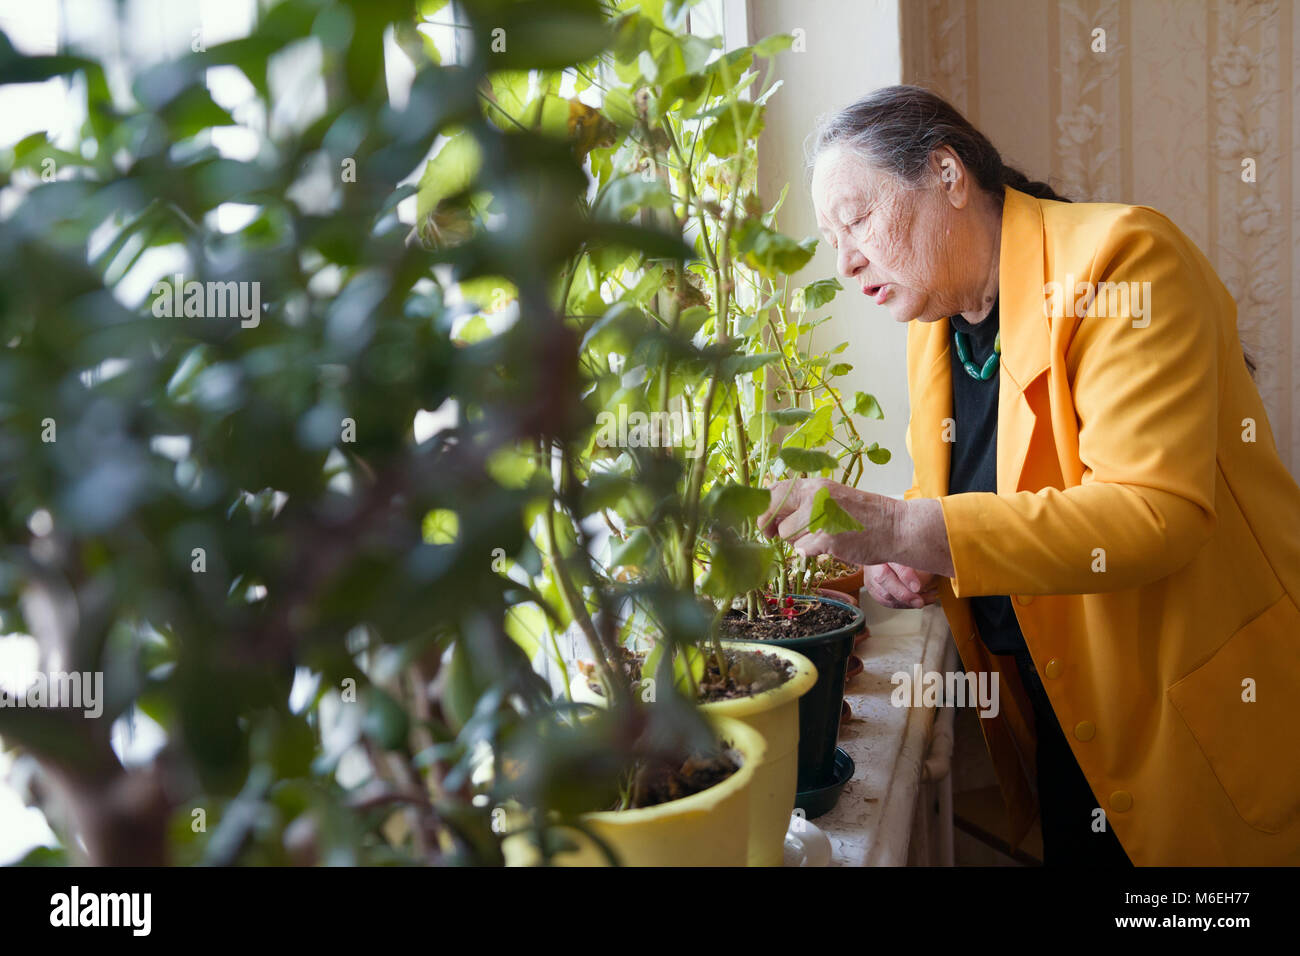 Old lady in the yellow jacket at the window with flowers - Stock Image